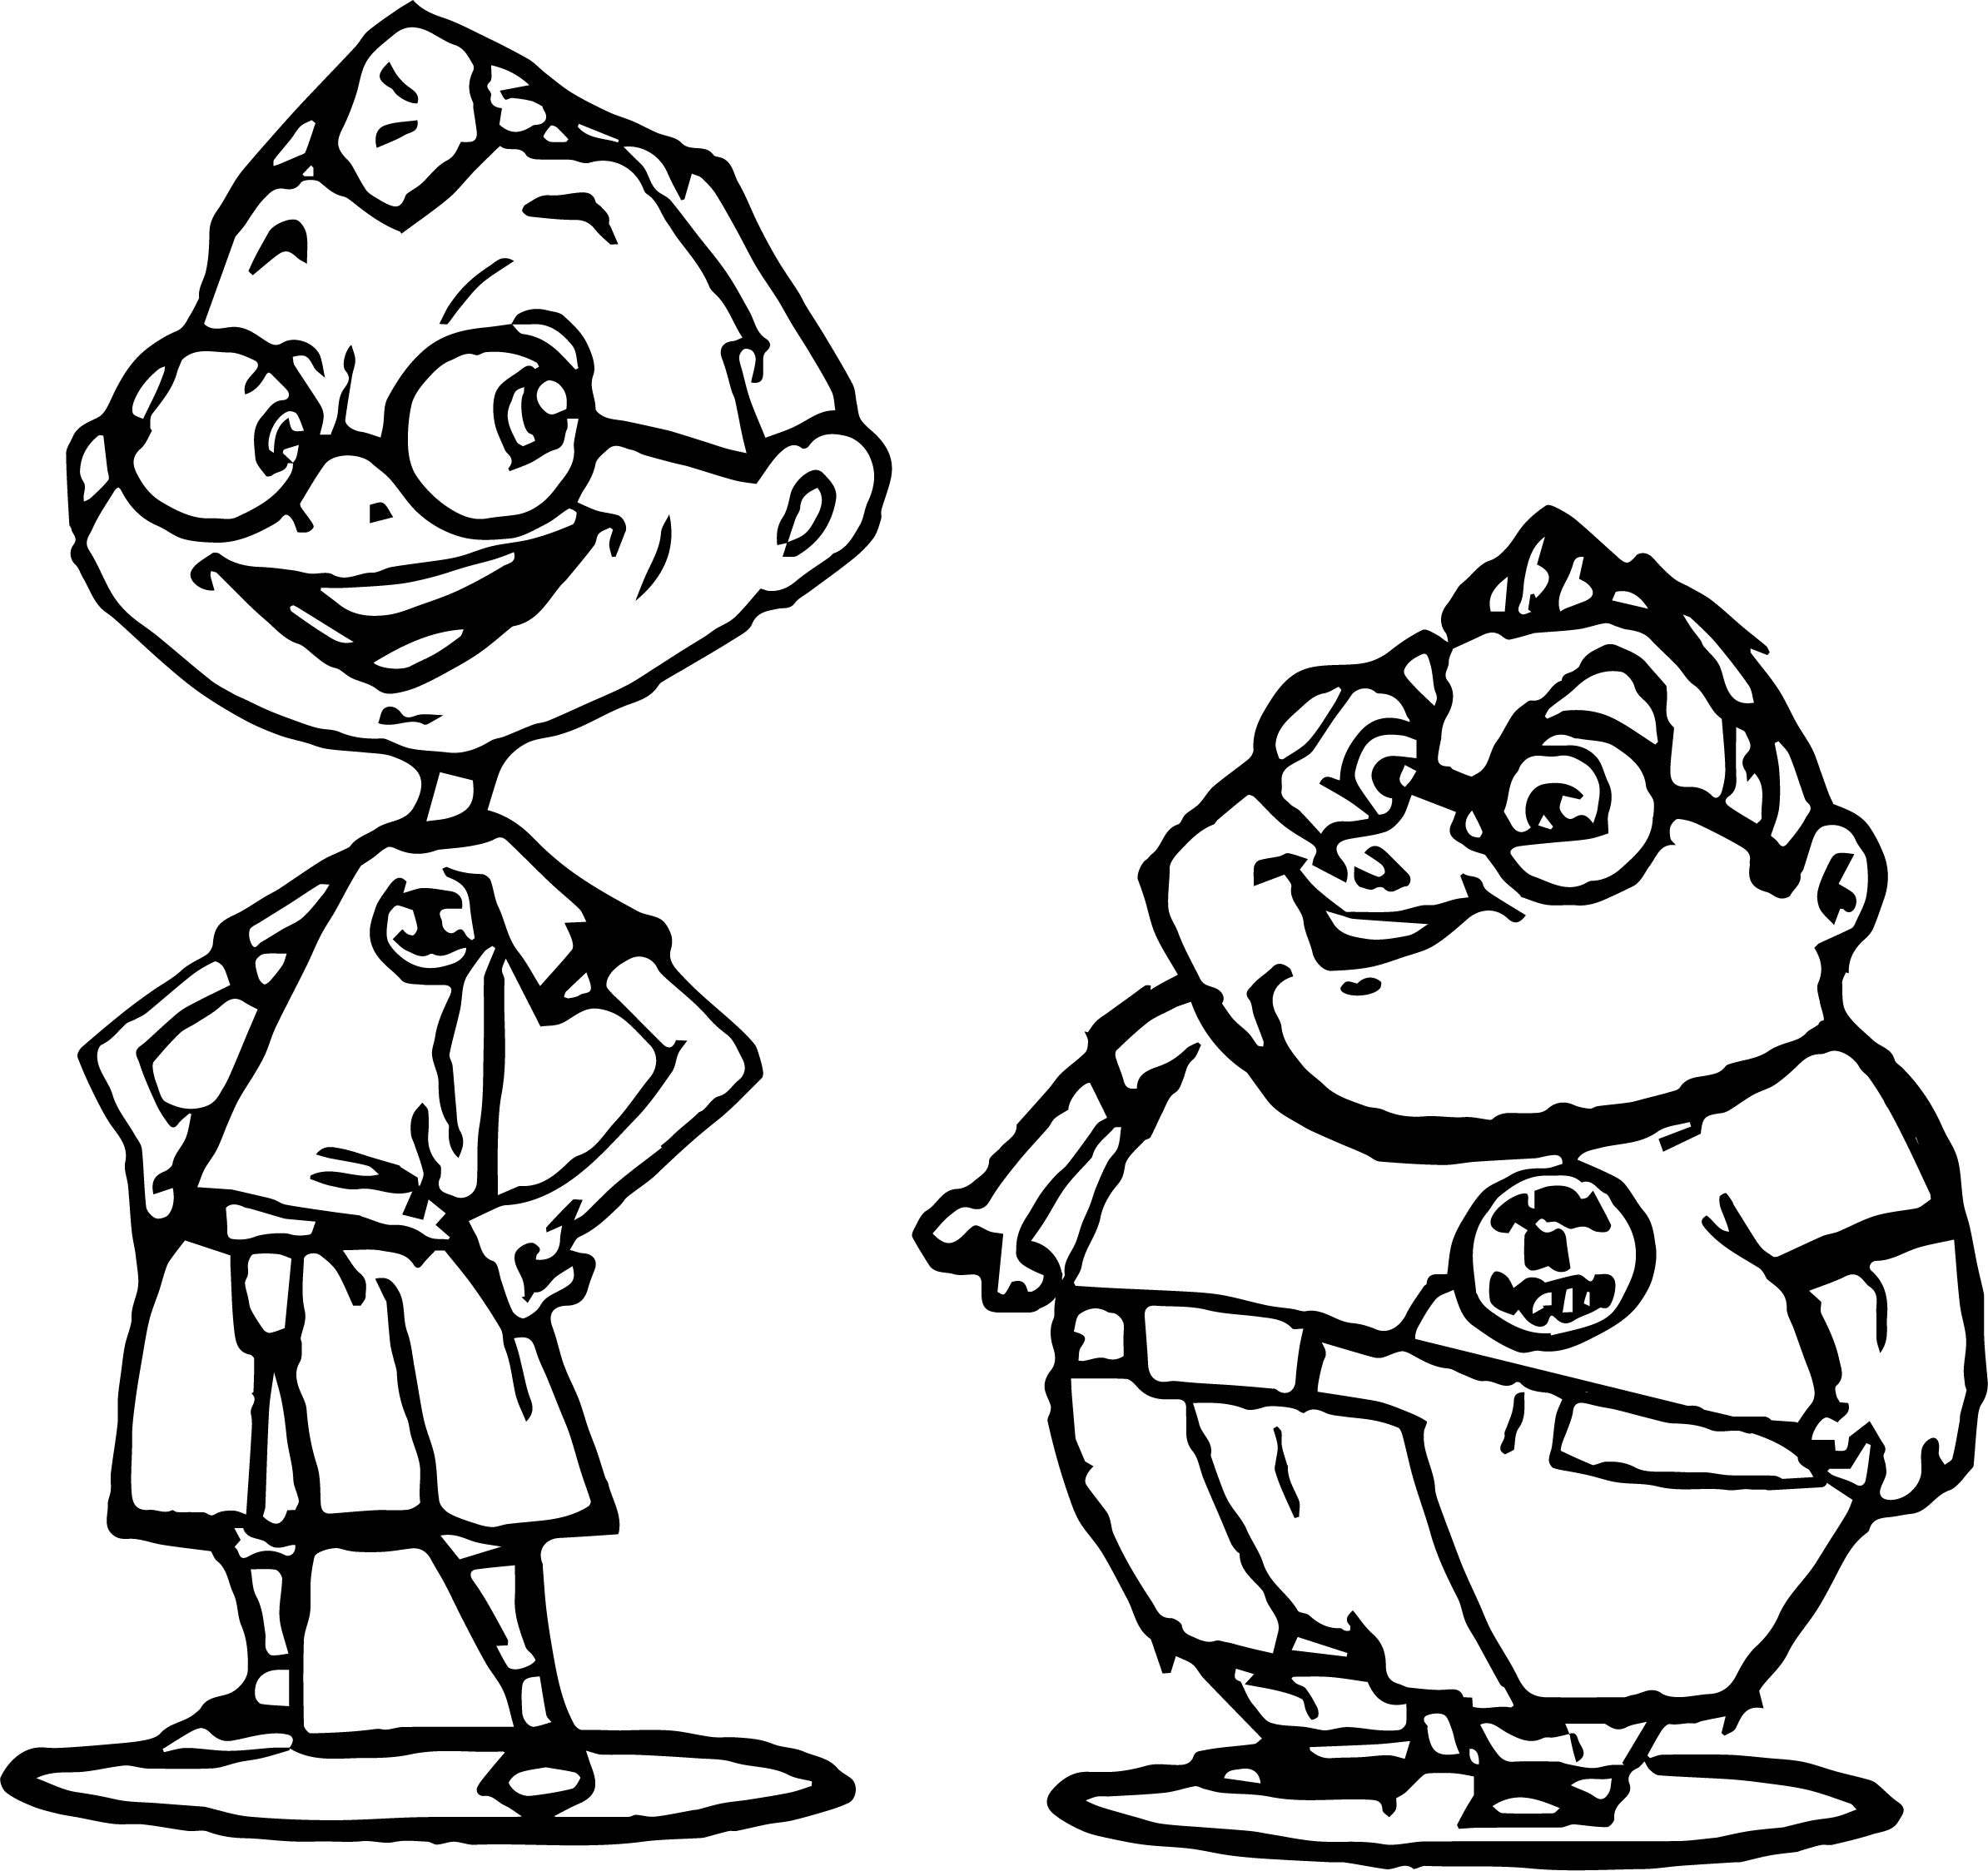 The Fat And The Nerdcharacter Coloring Page